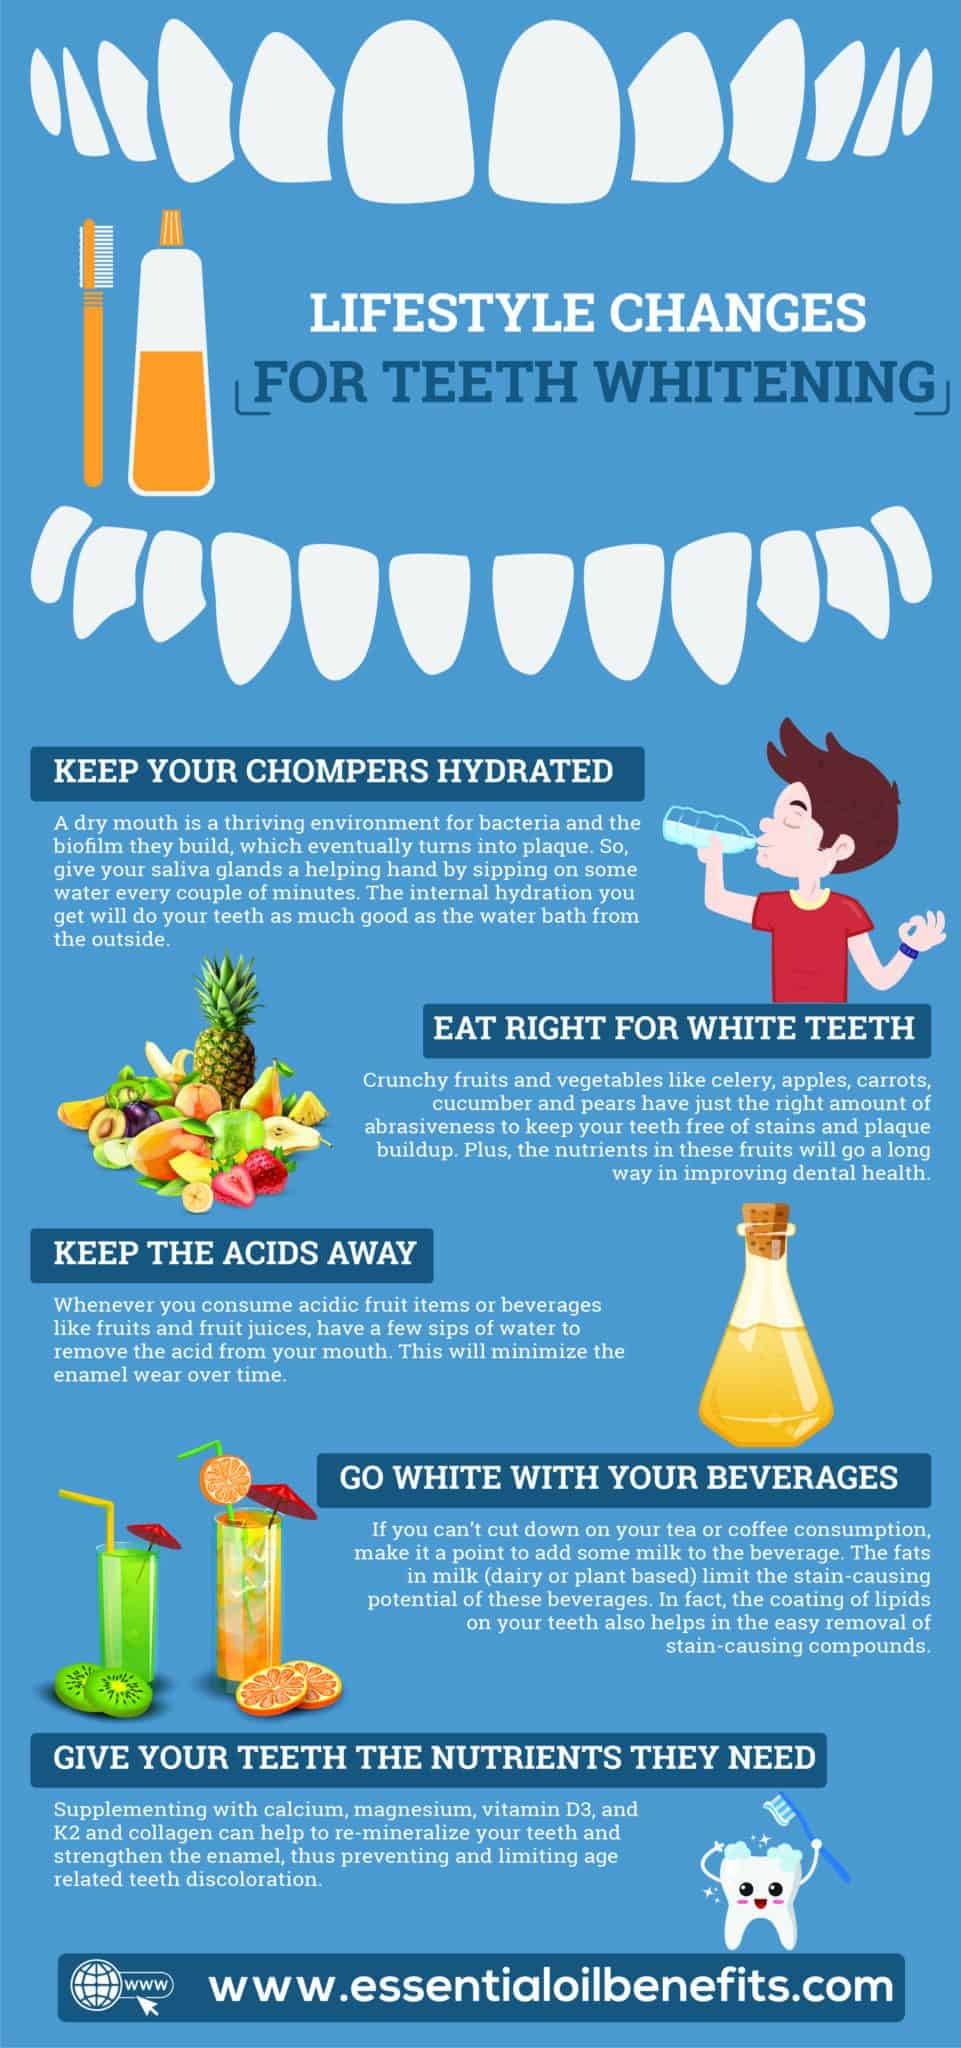 How To Whiten Teeth With Essential Oils Essential Oil Benefits